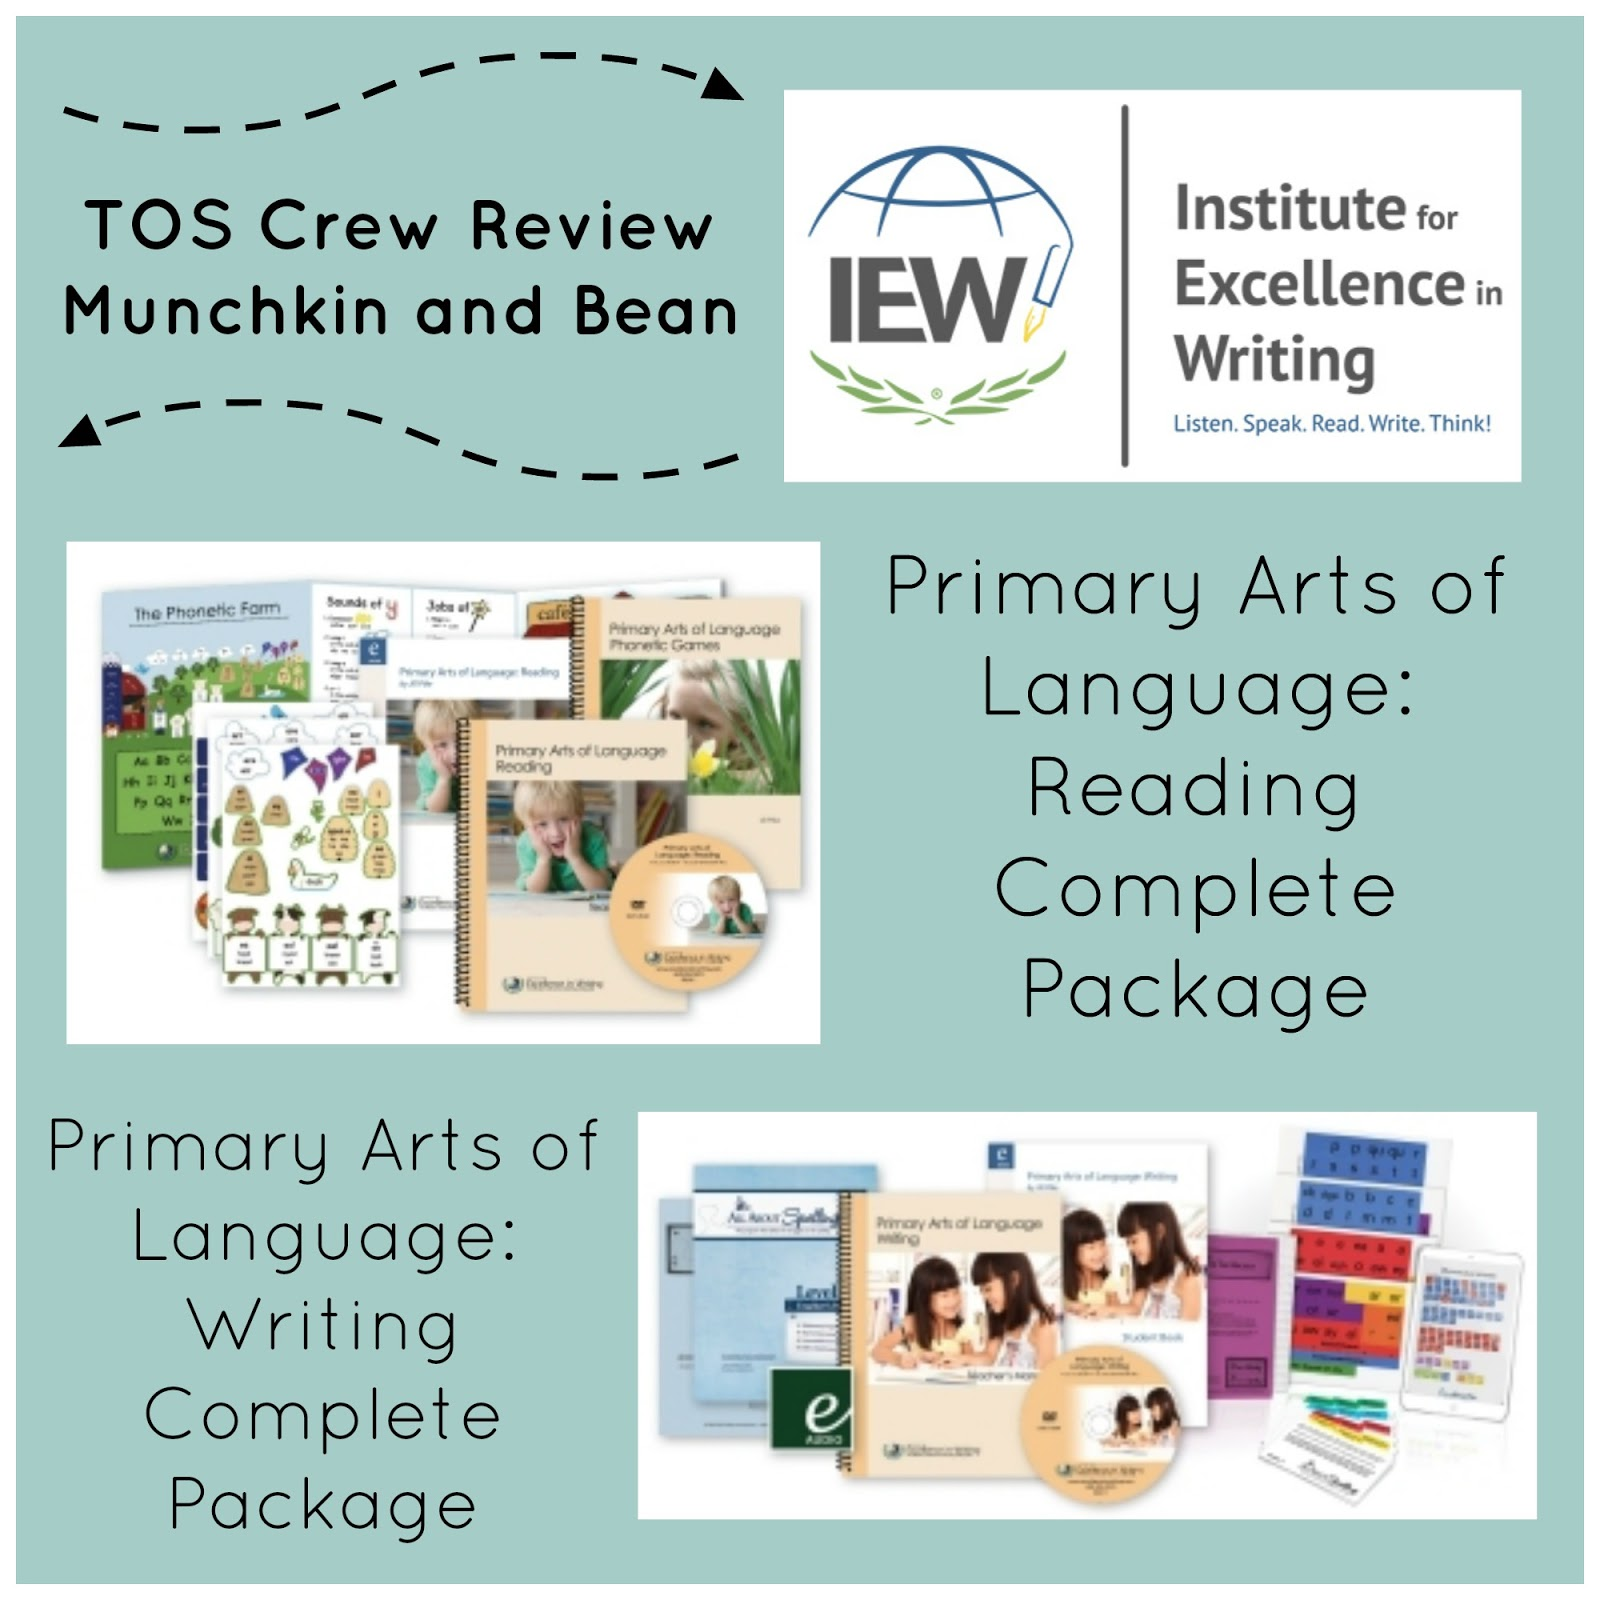 institute for excellence in writing reviews